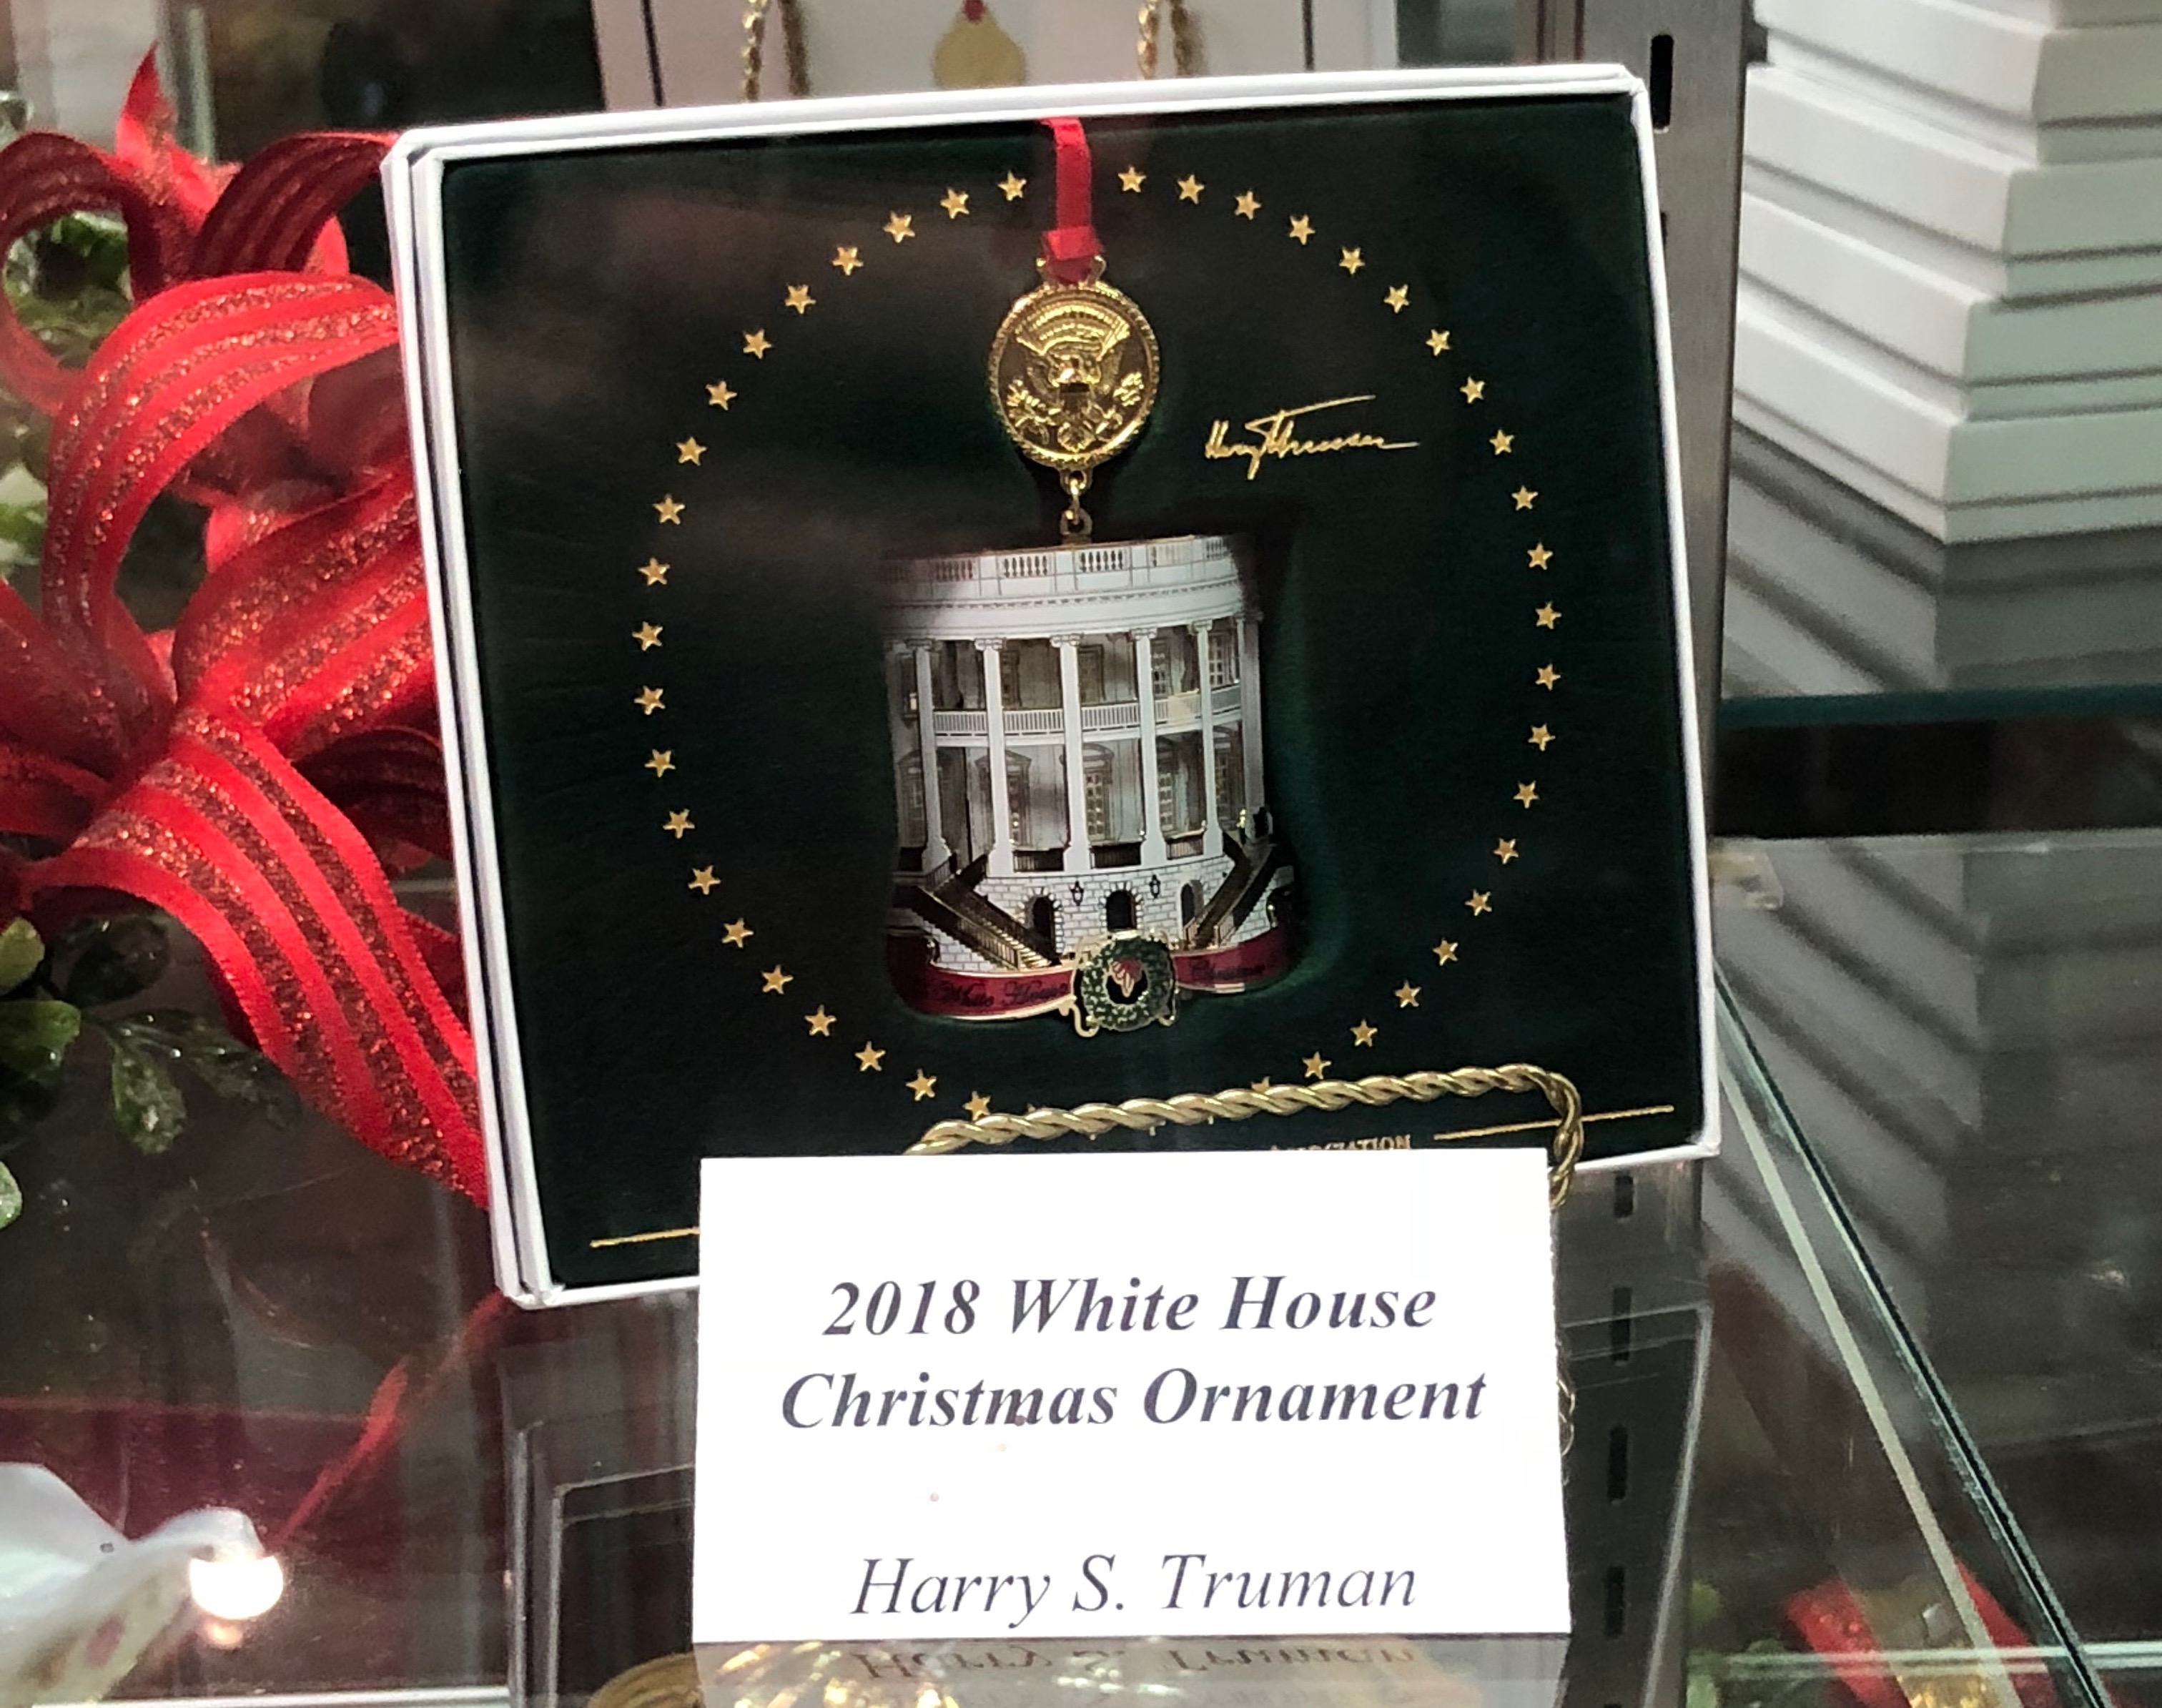 2018 White House Christmas ornament sold at Presidential Site